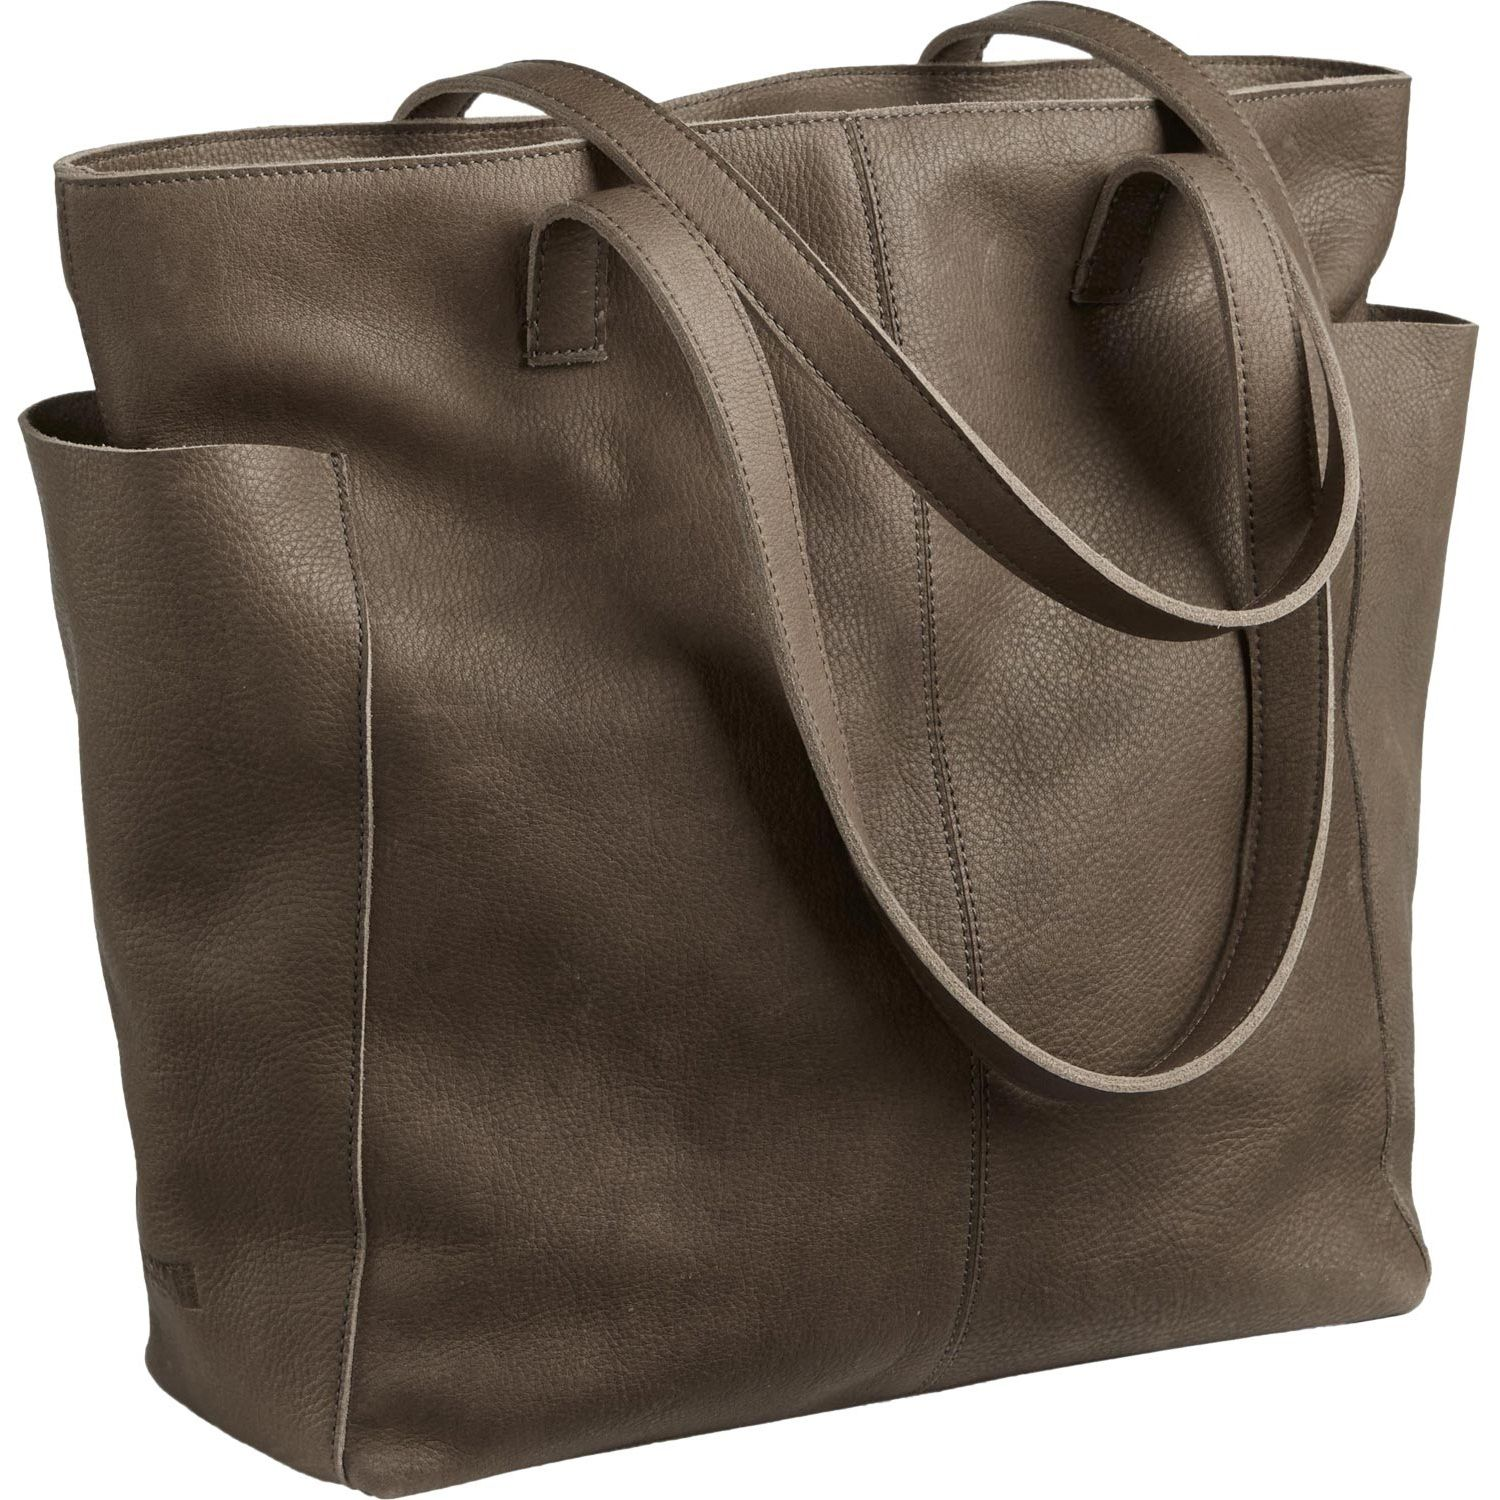 6d8467b94622 Women s Lifetime Leather Travel Tote Bag from Duluth Trading Company is  made of beautiful